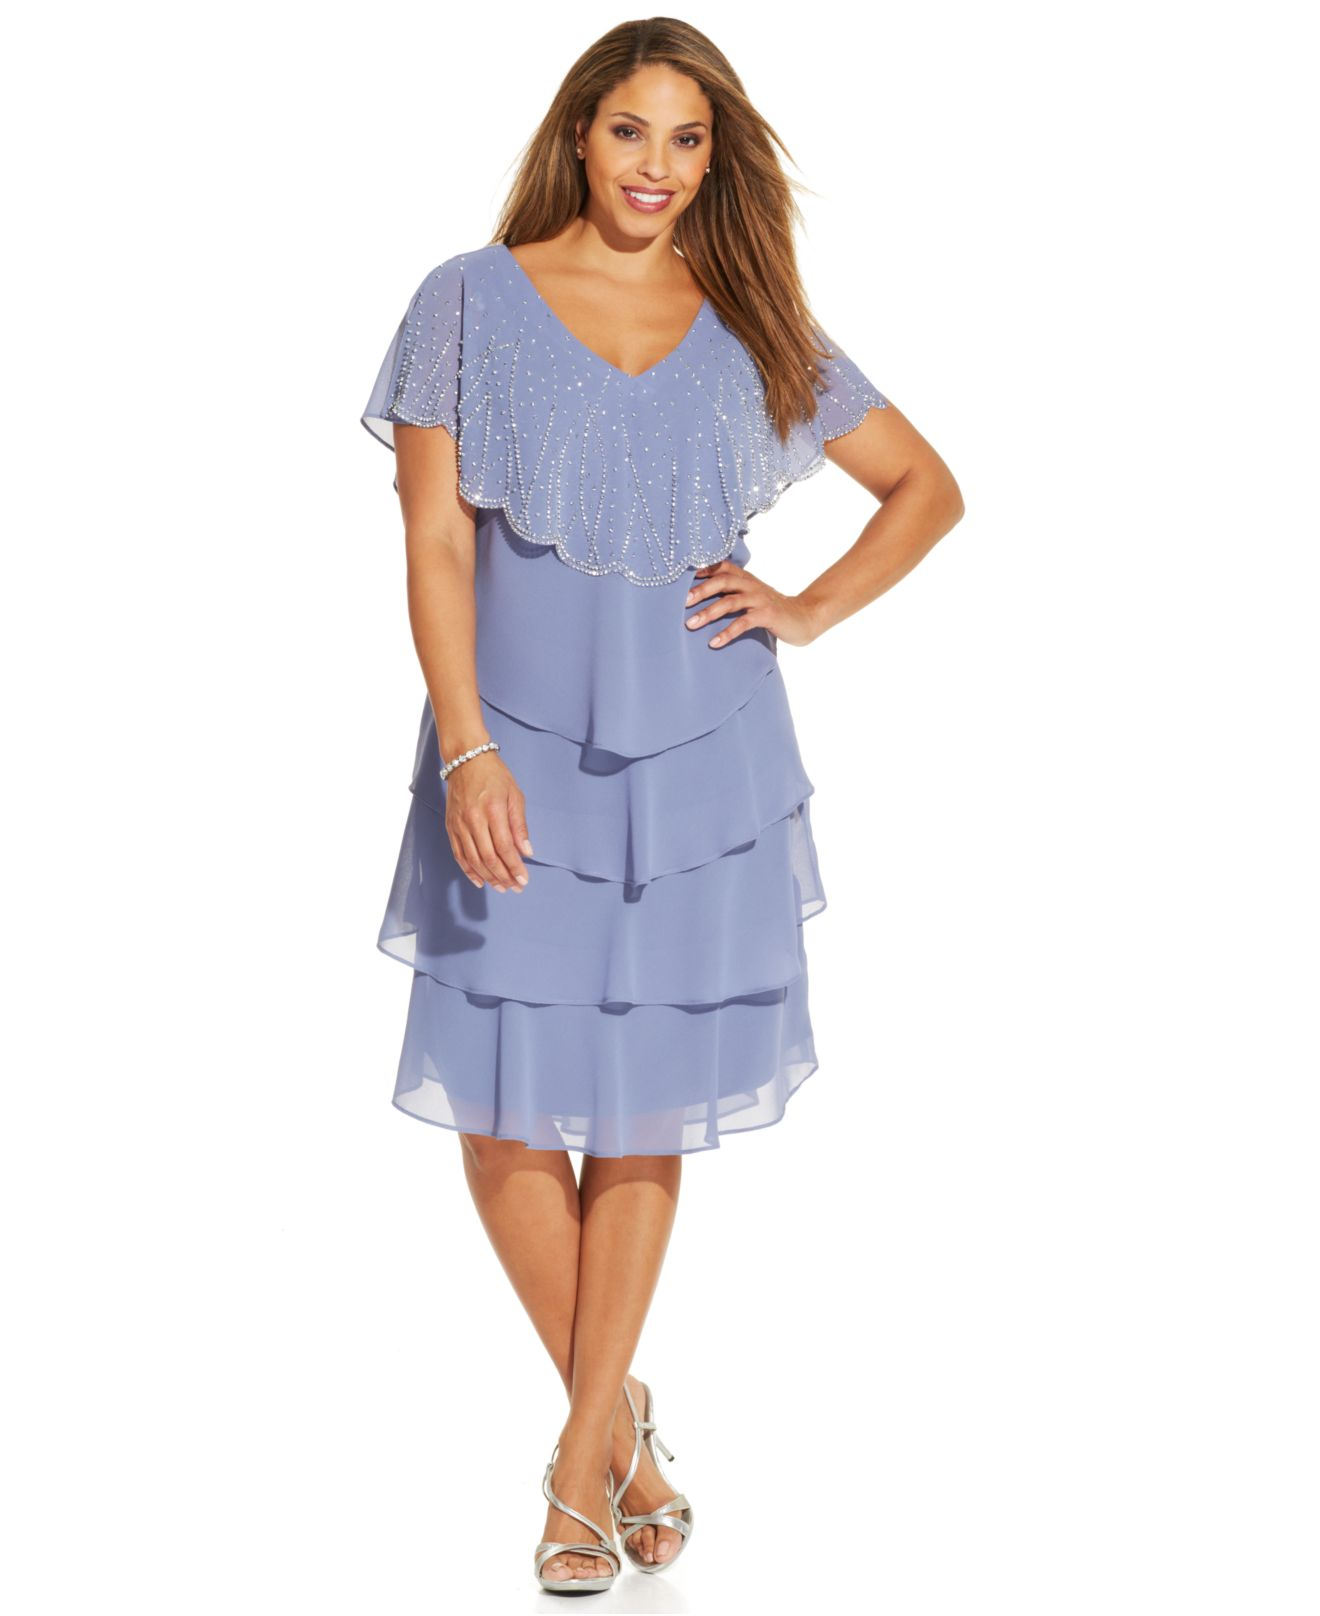 4ecfd69ac09 Patra Plus Size Embellished Tiered Chiffon Dress in Blue - Lyst